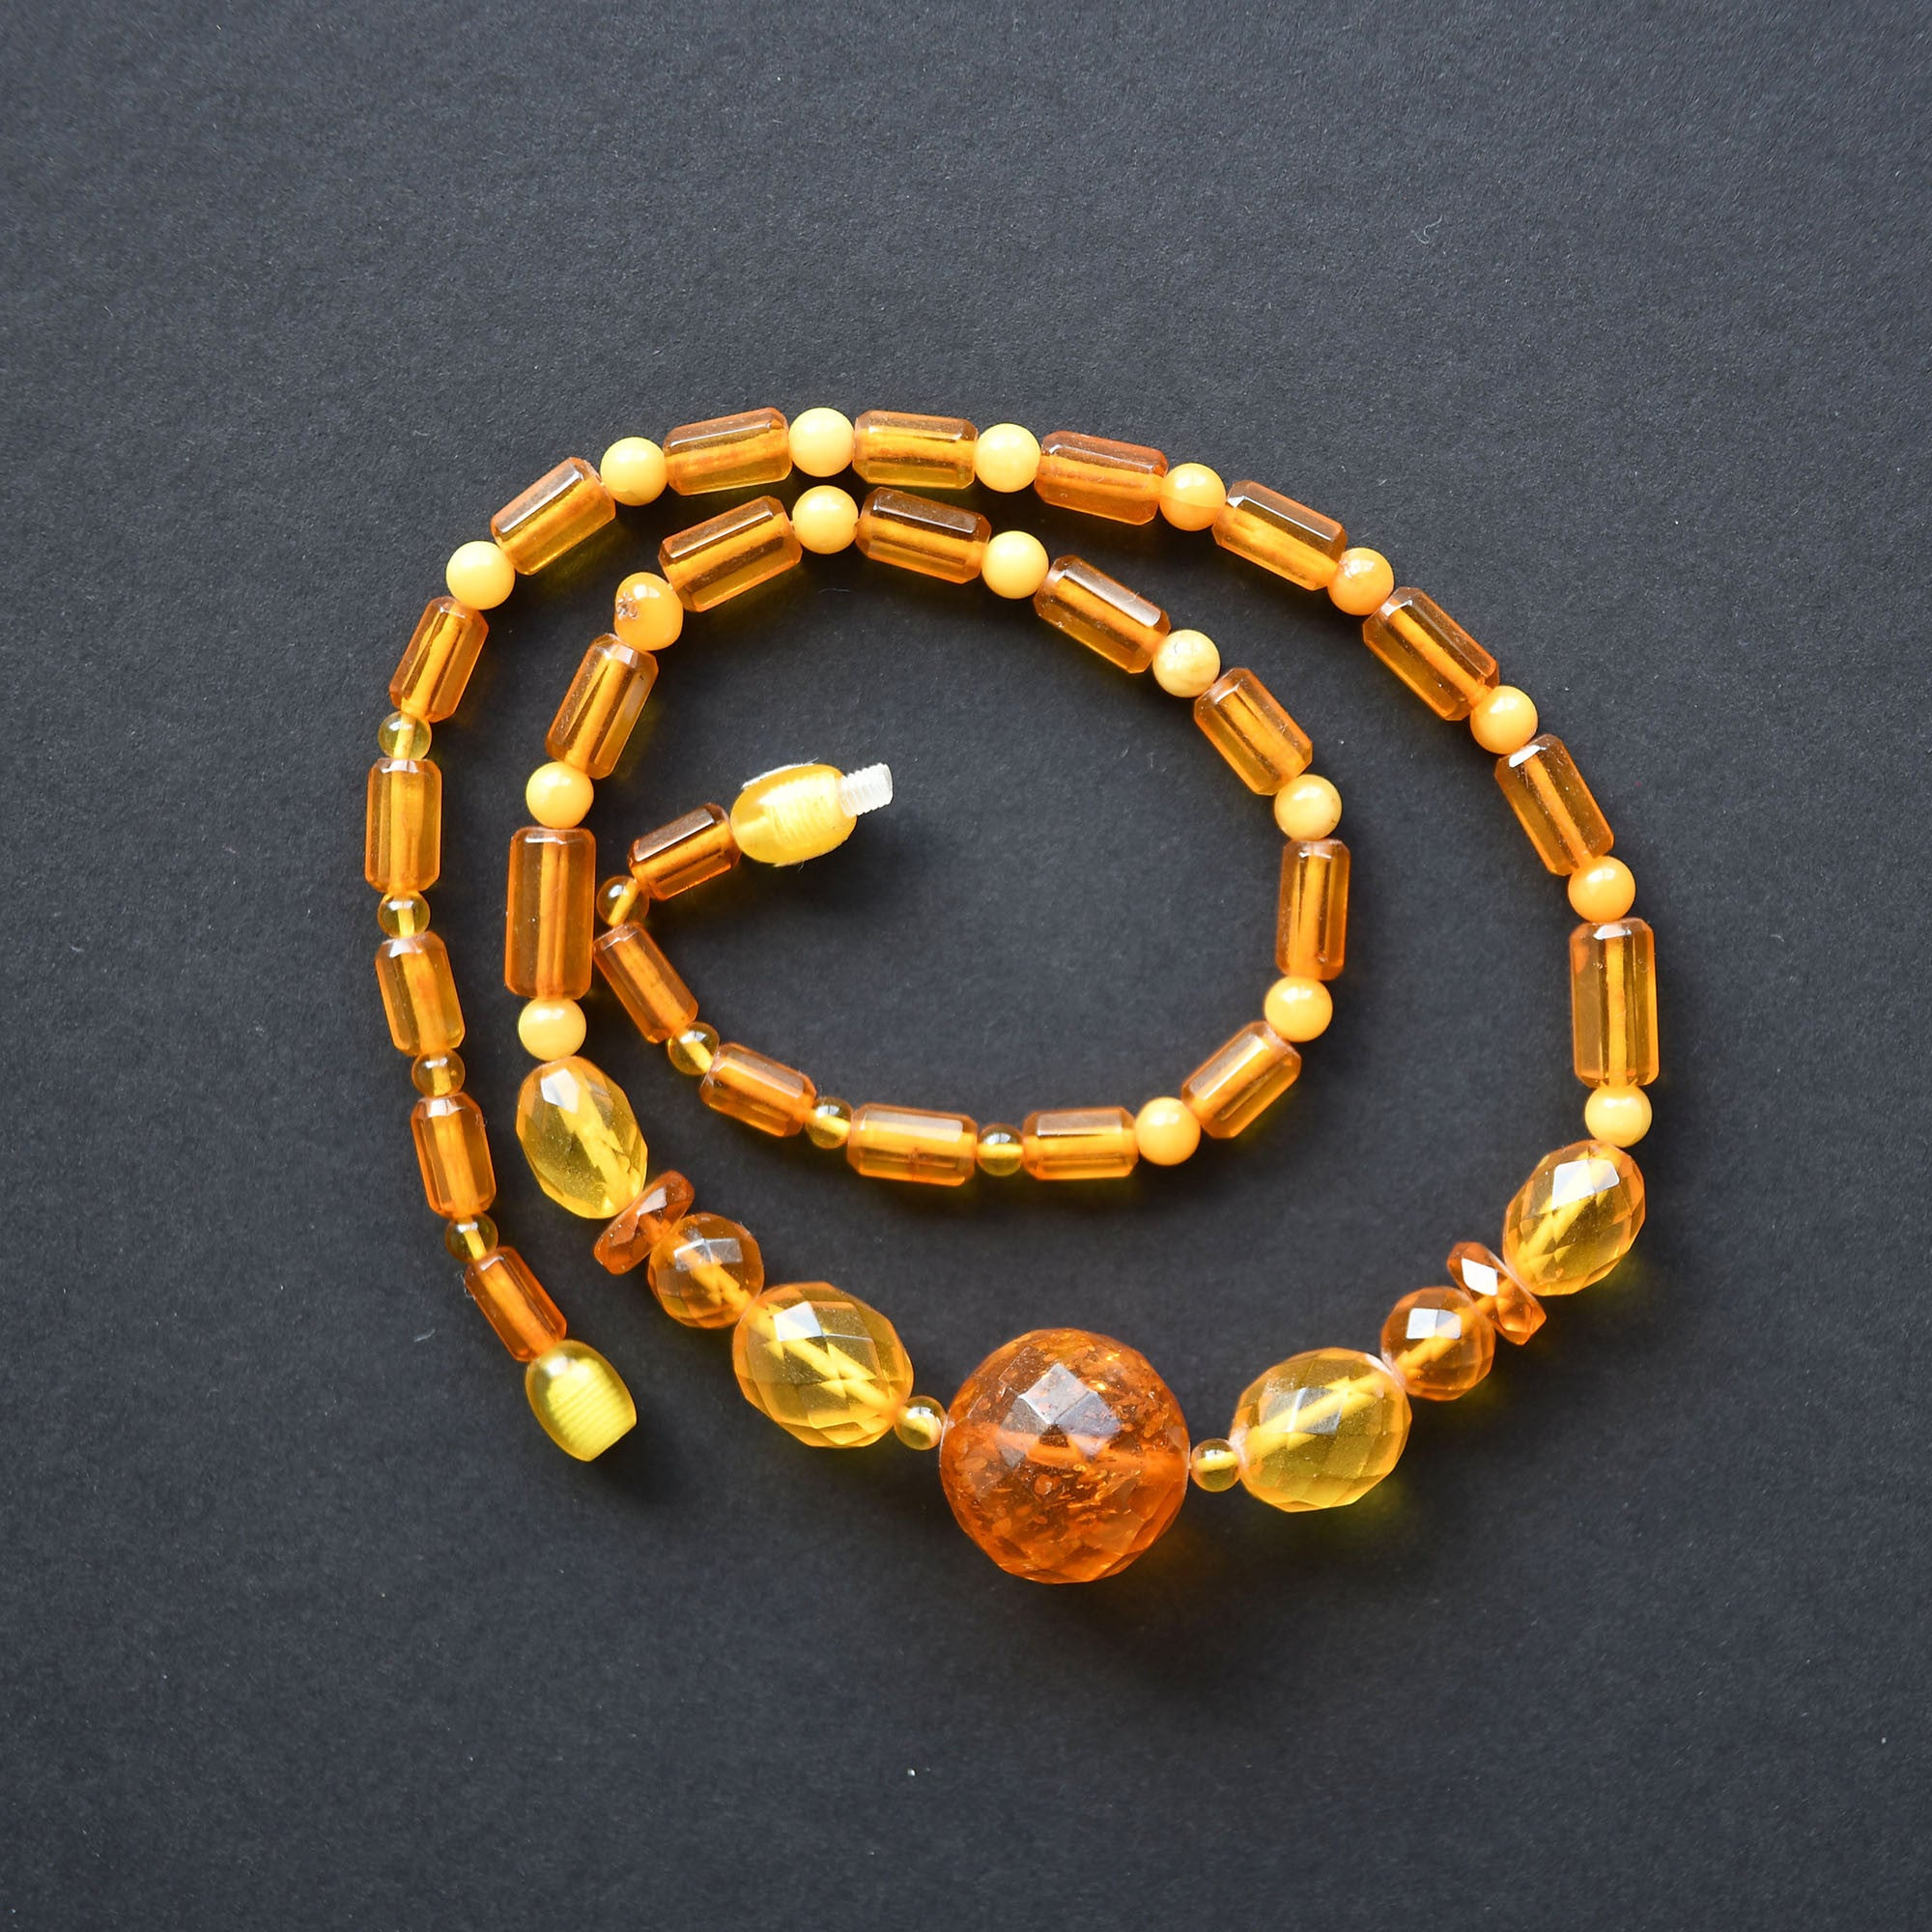 Vintage bead necklace of facetted transparent and mate amber